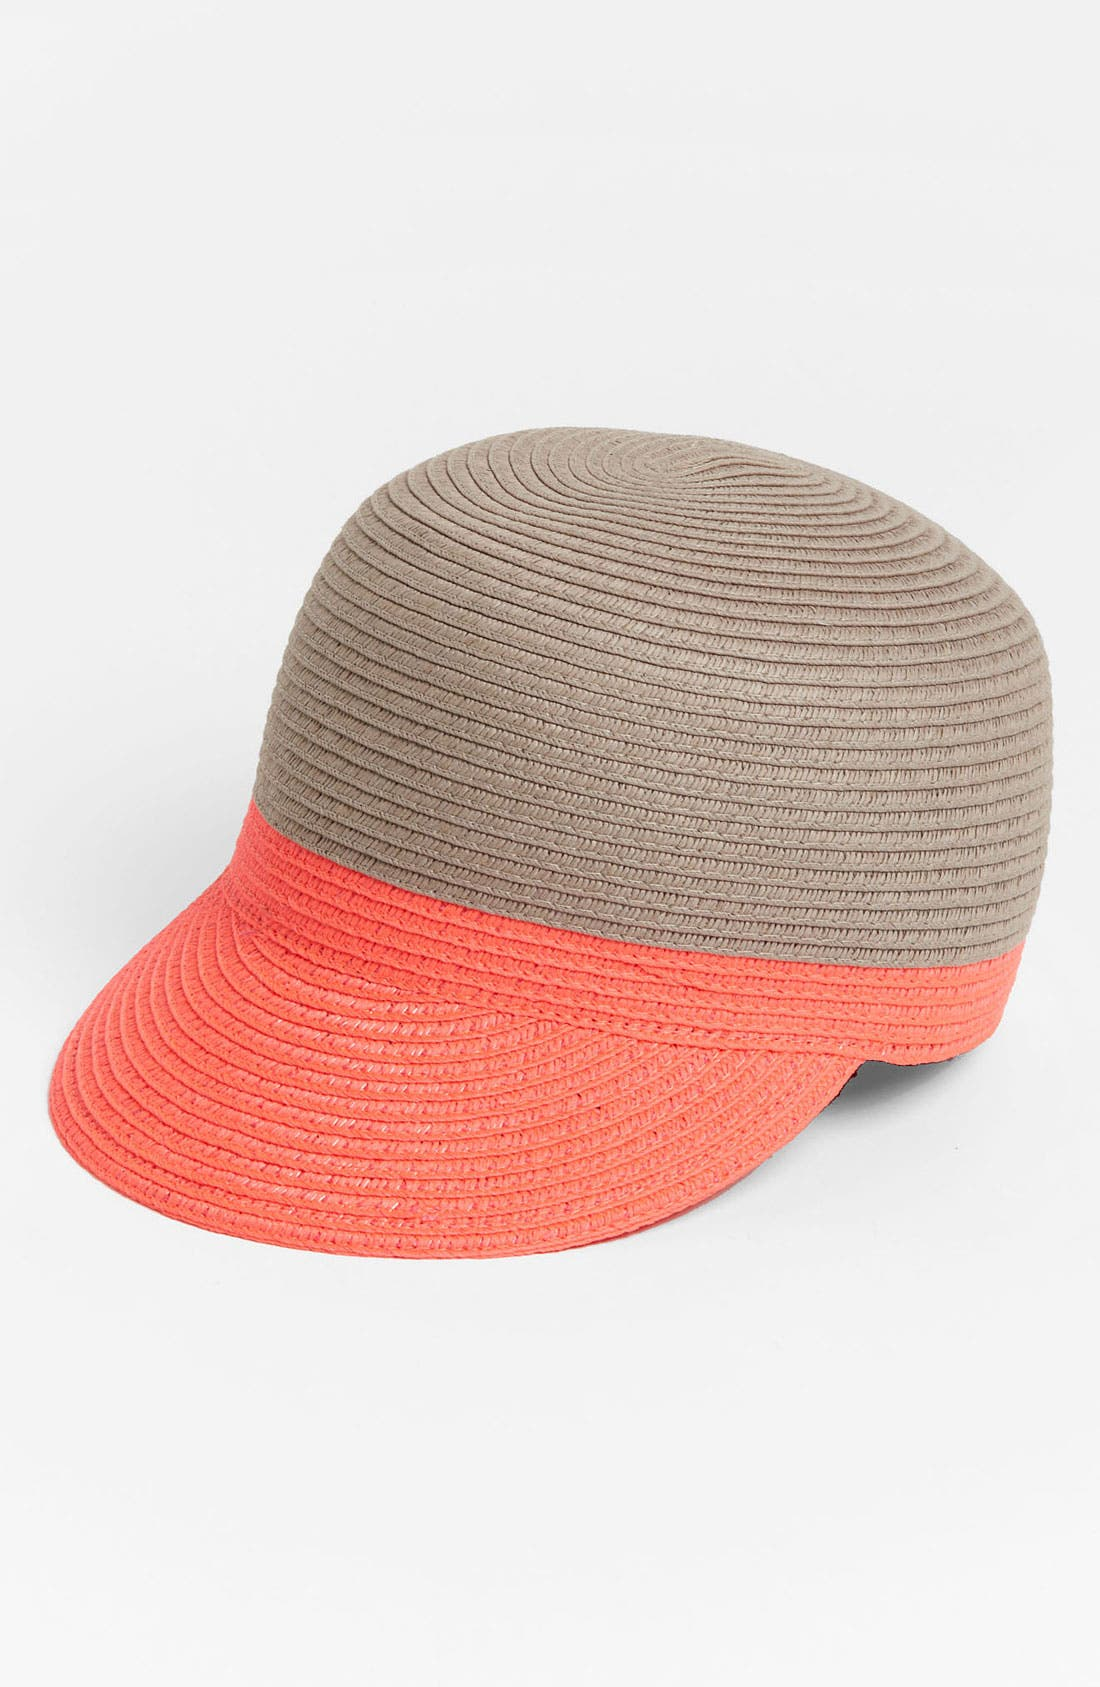 Alternate Image 1 Selected - Collection XIIX Colorblocked Woven Cap